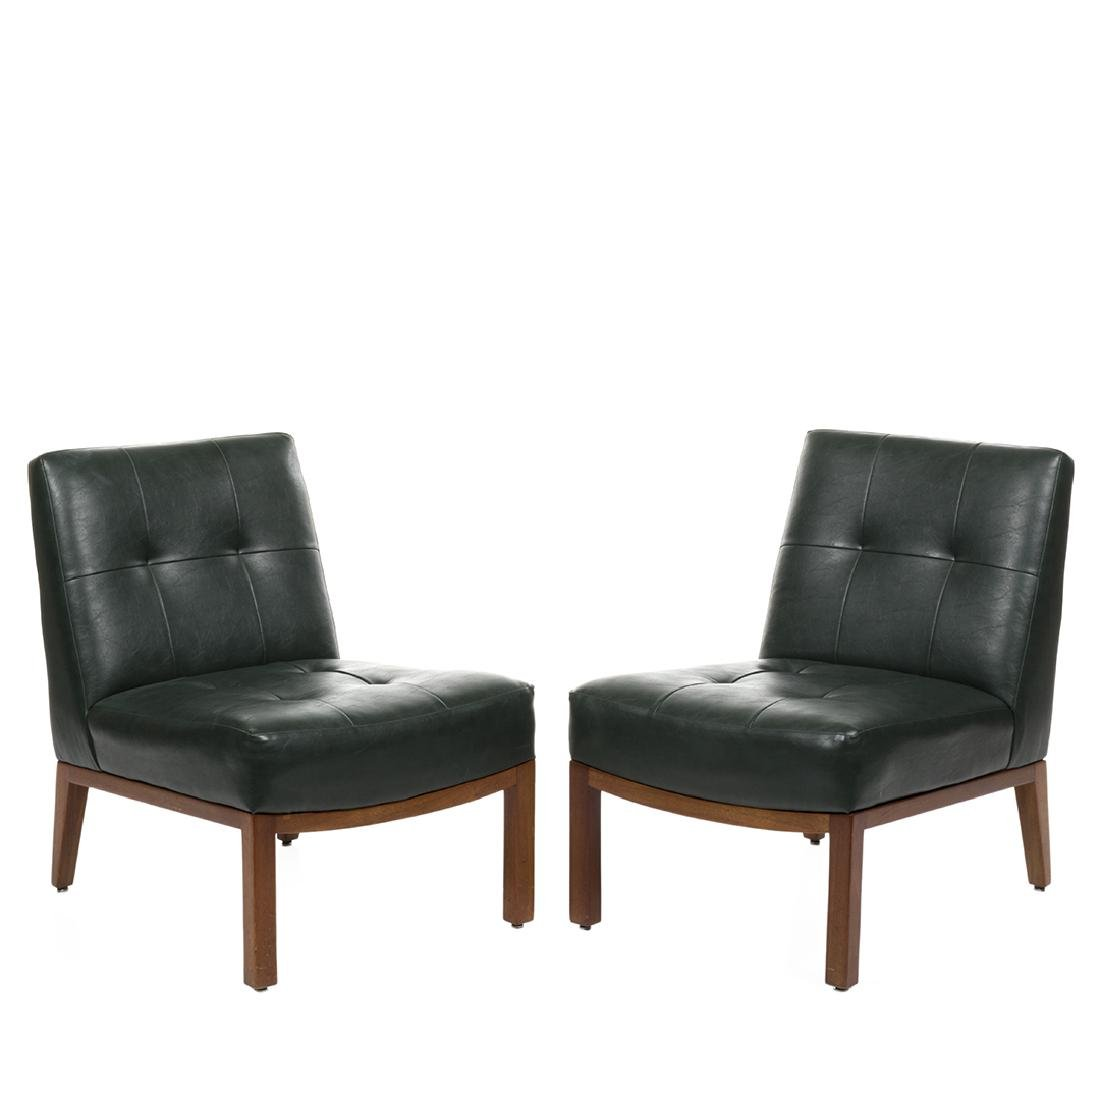 Edward Wormley Slipper Chairs (2)